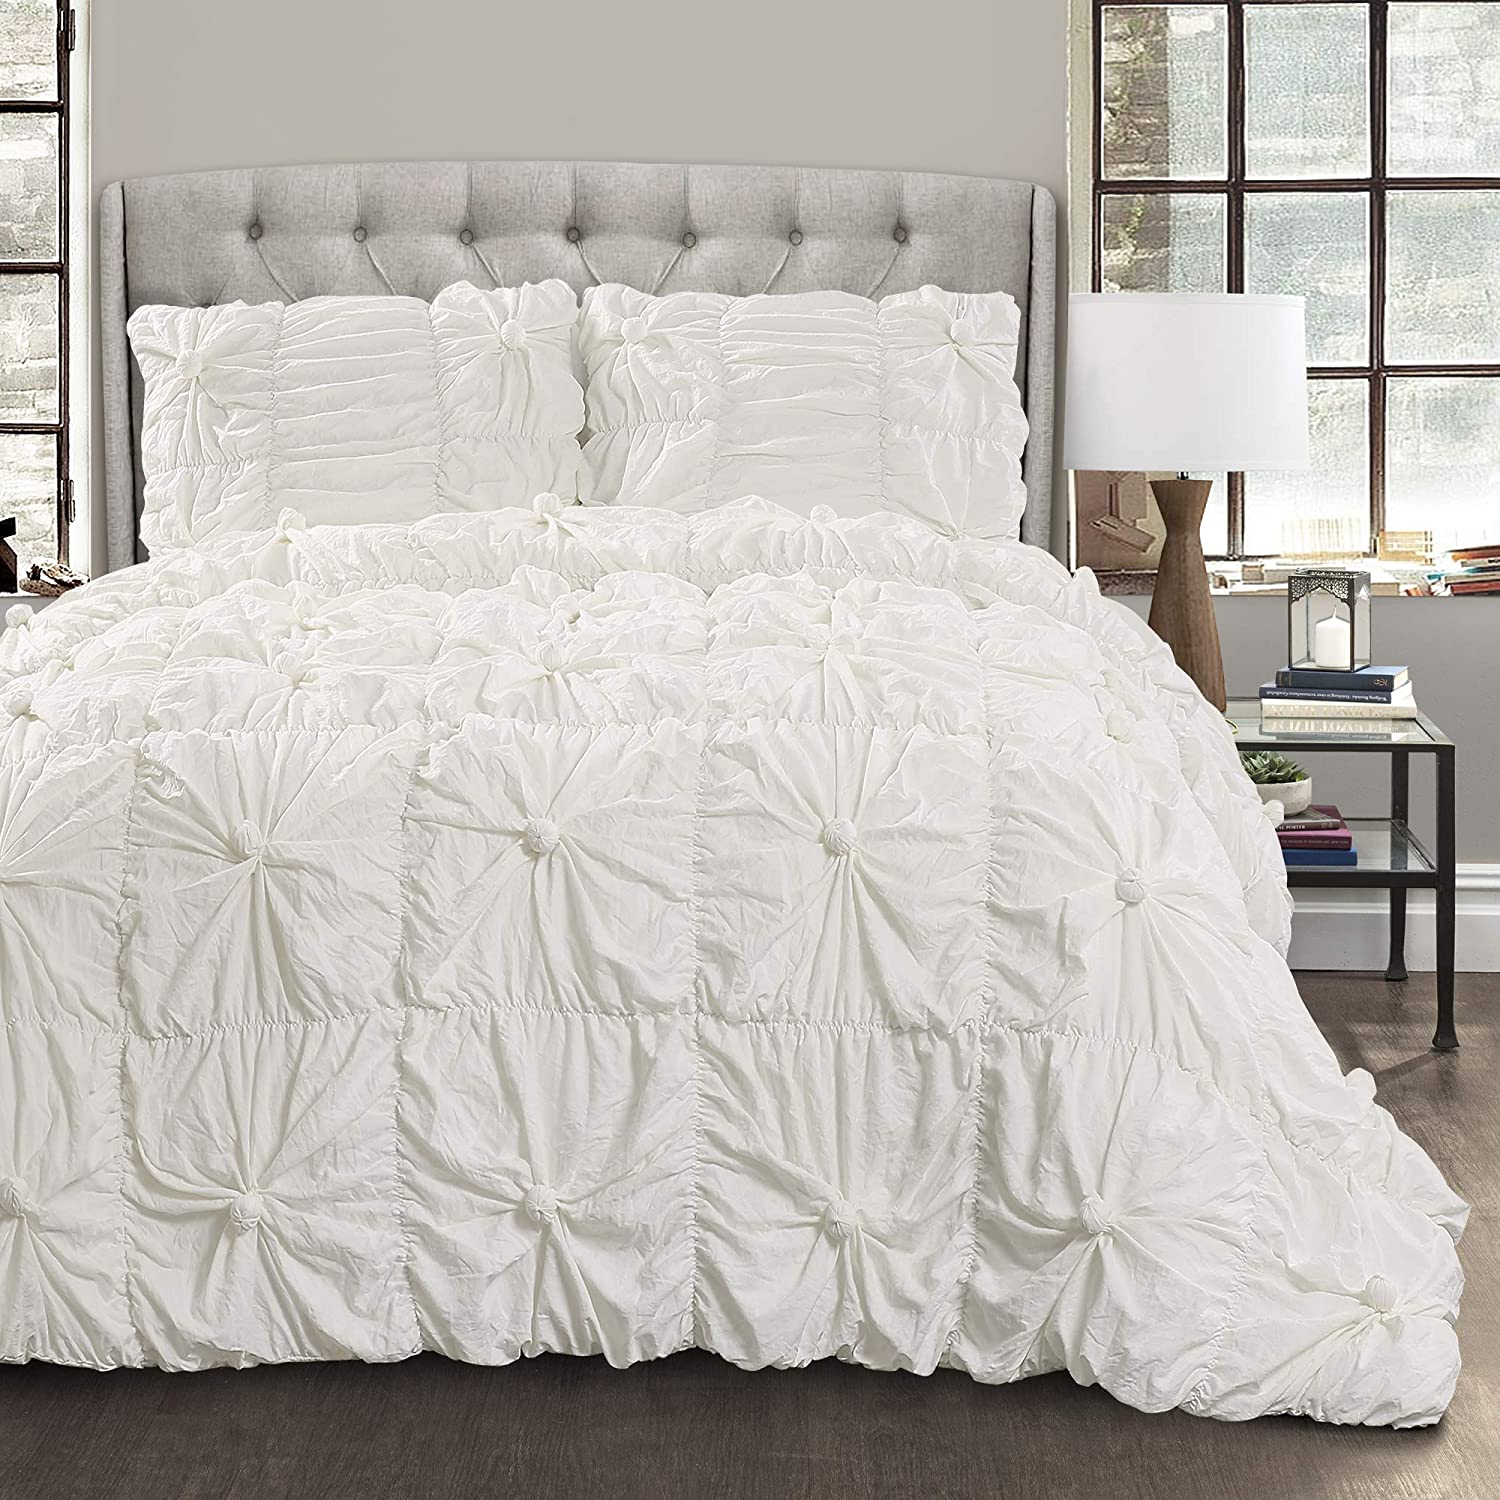 Lush Decor White Bella Comforter Set Shabby Chic Style Ruched 3 Piece Bedding with Pillow Shams-Full Queen